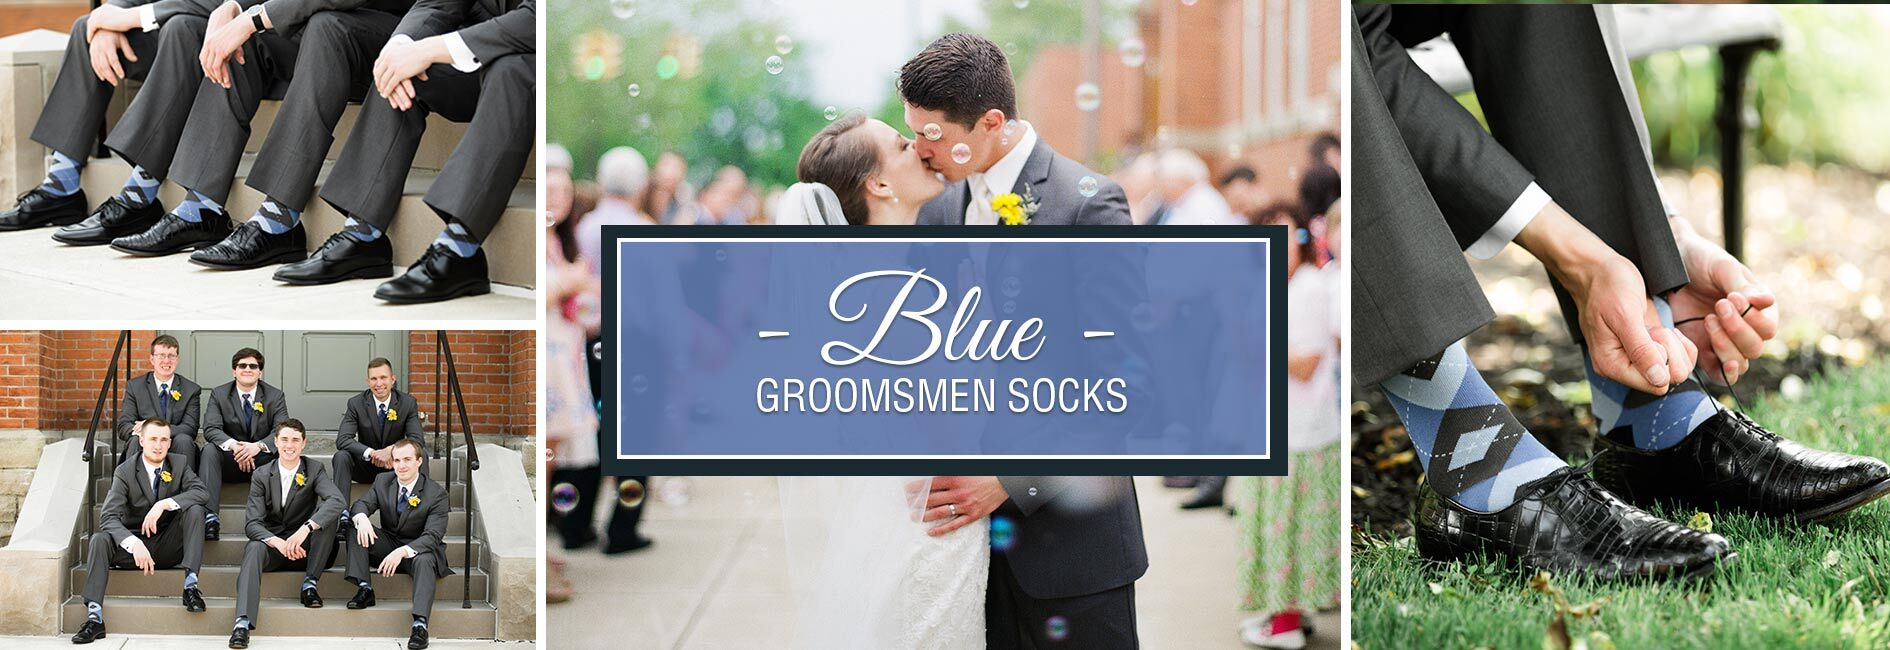 Blue Groomsmen Wedding Socks Banner